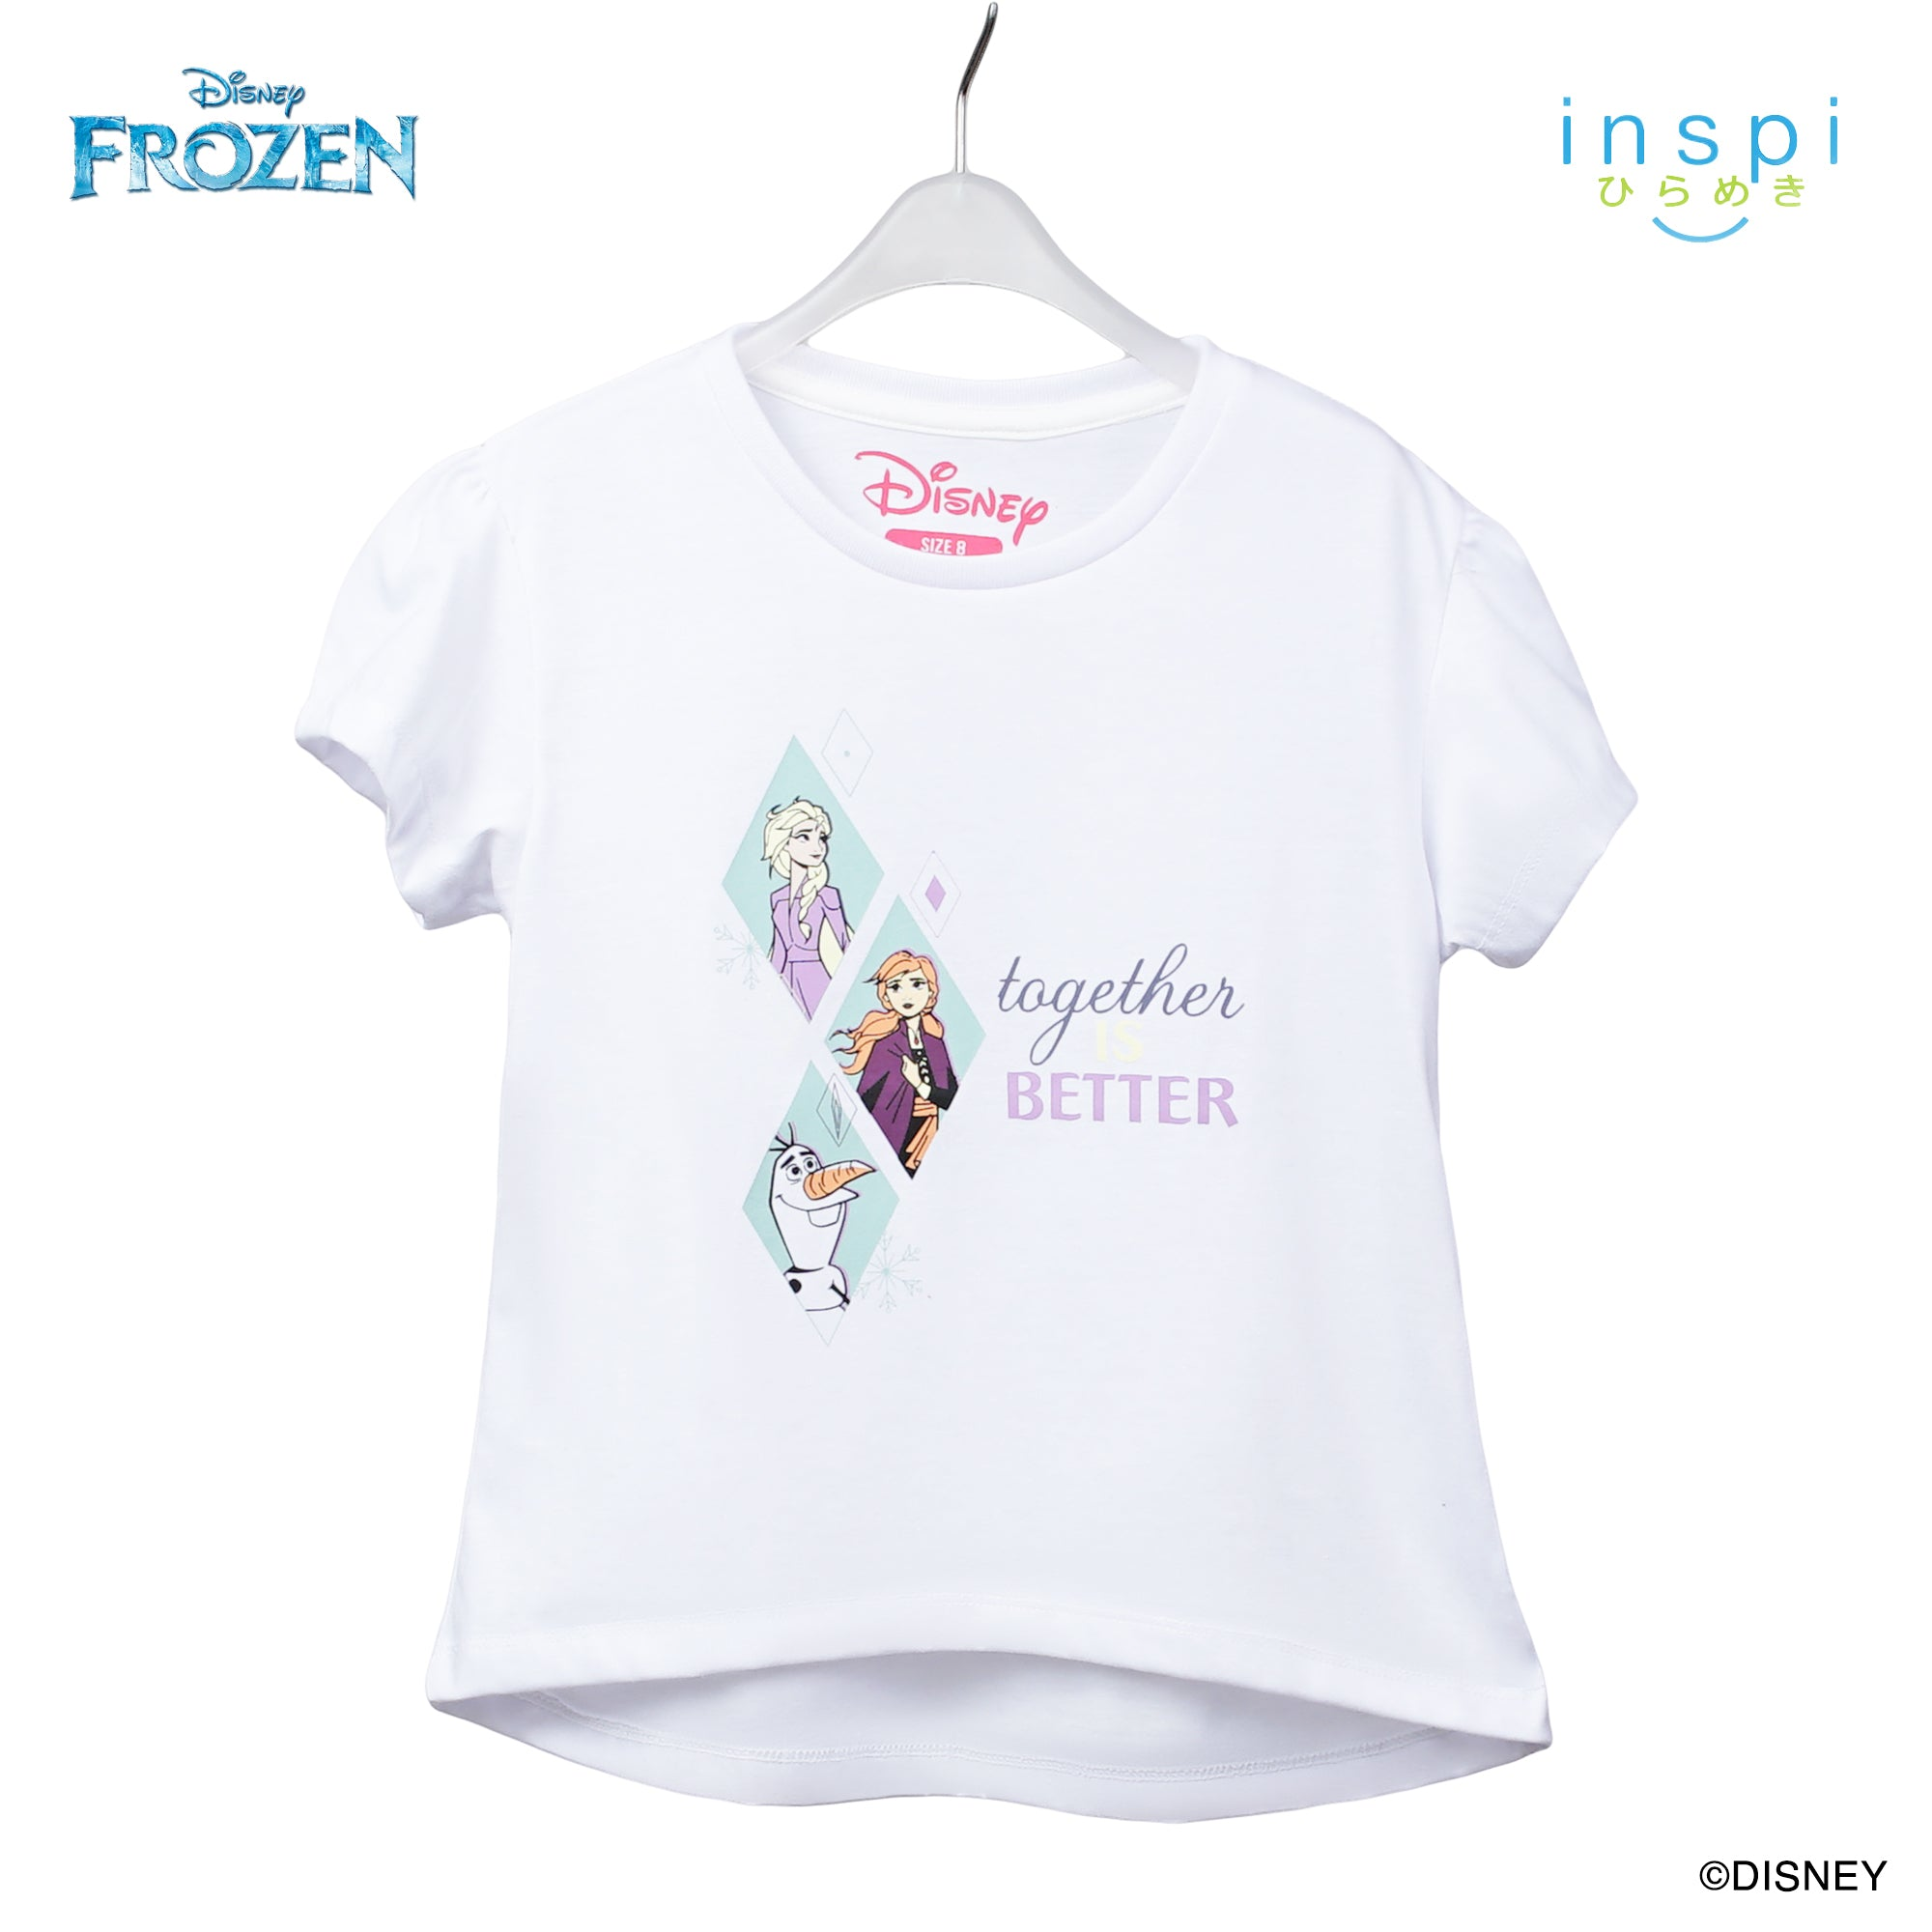 Disney Frozen Together is Better Tshirt in White for Girls Inspi Shirt